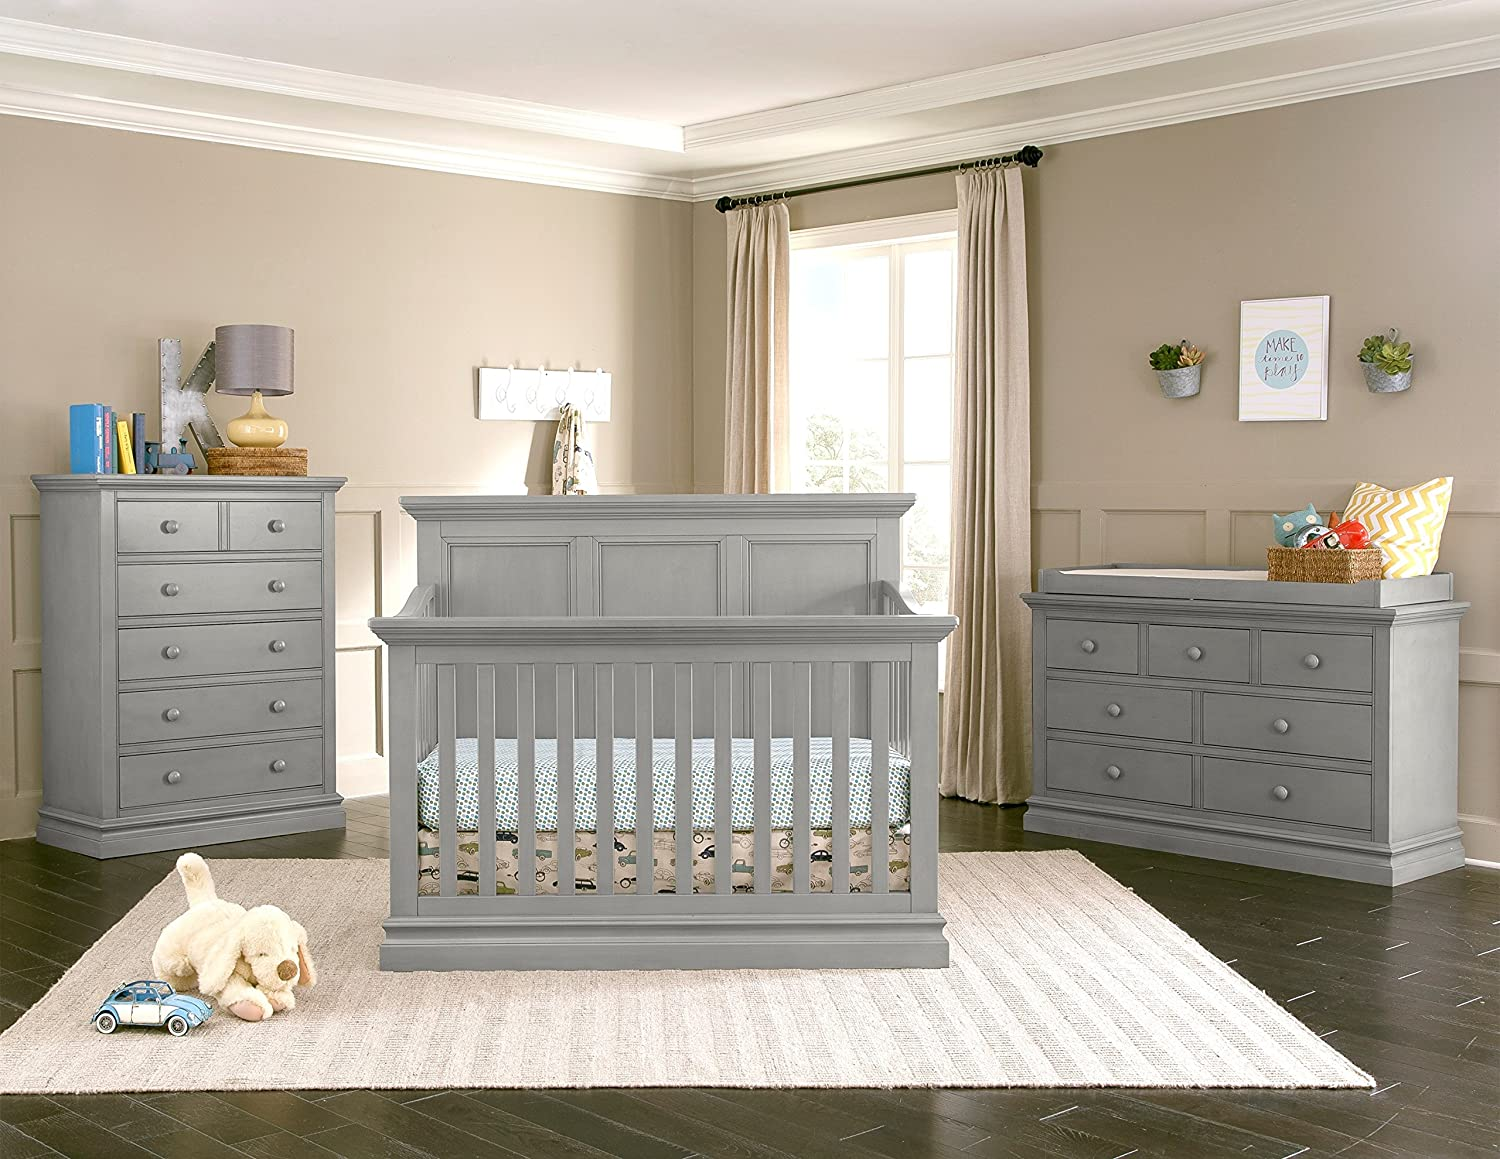 echo westwood p cribs design crib in white